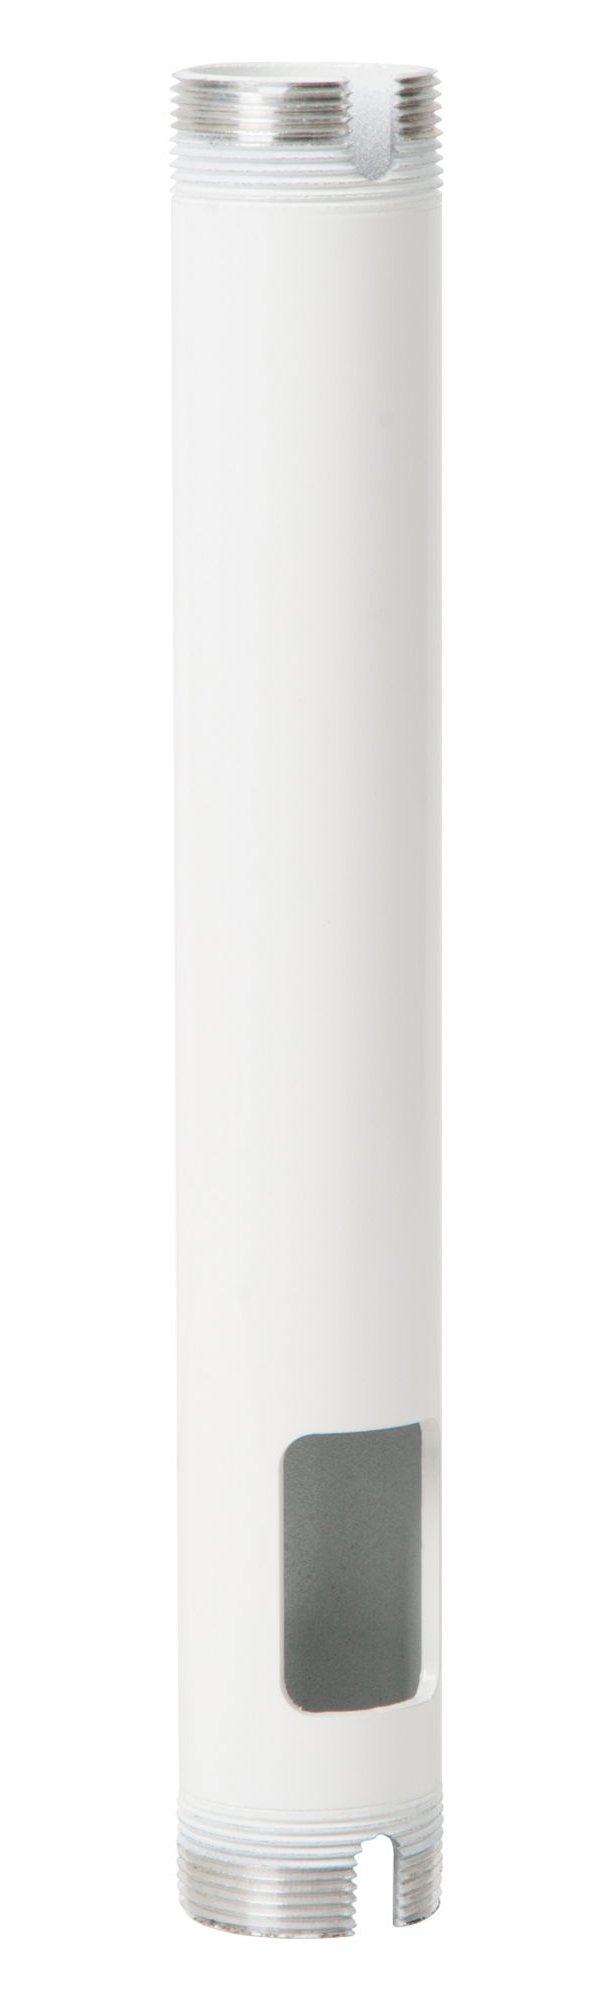 1 ft Fixed Extension Column, White